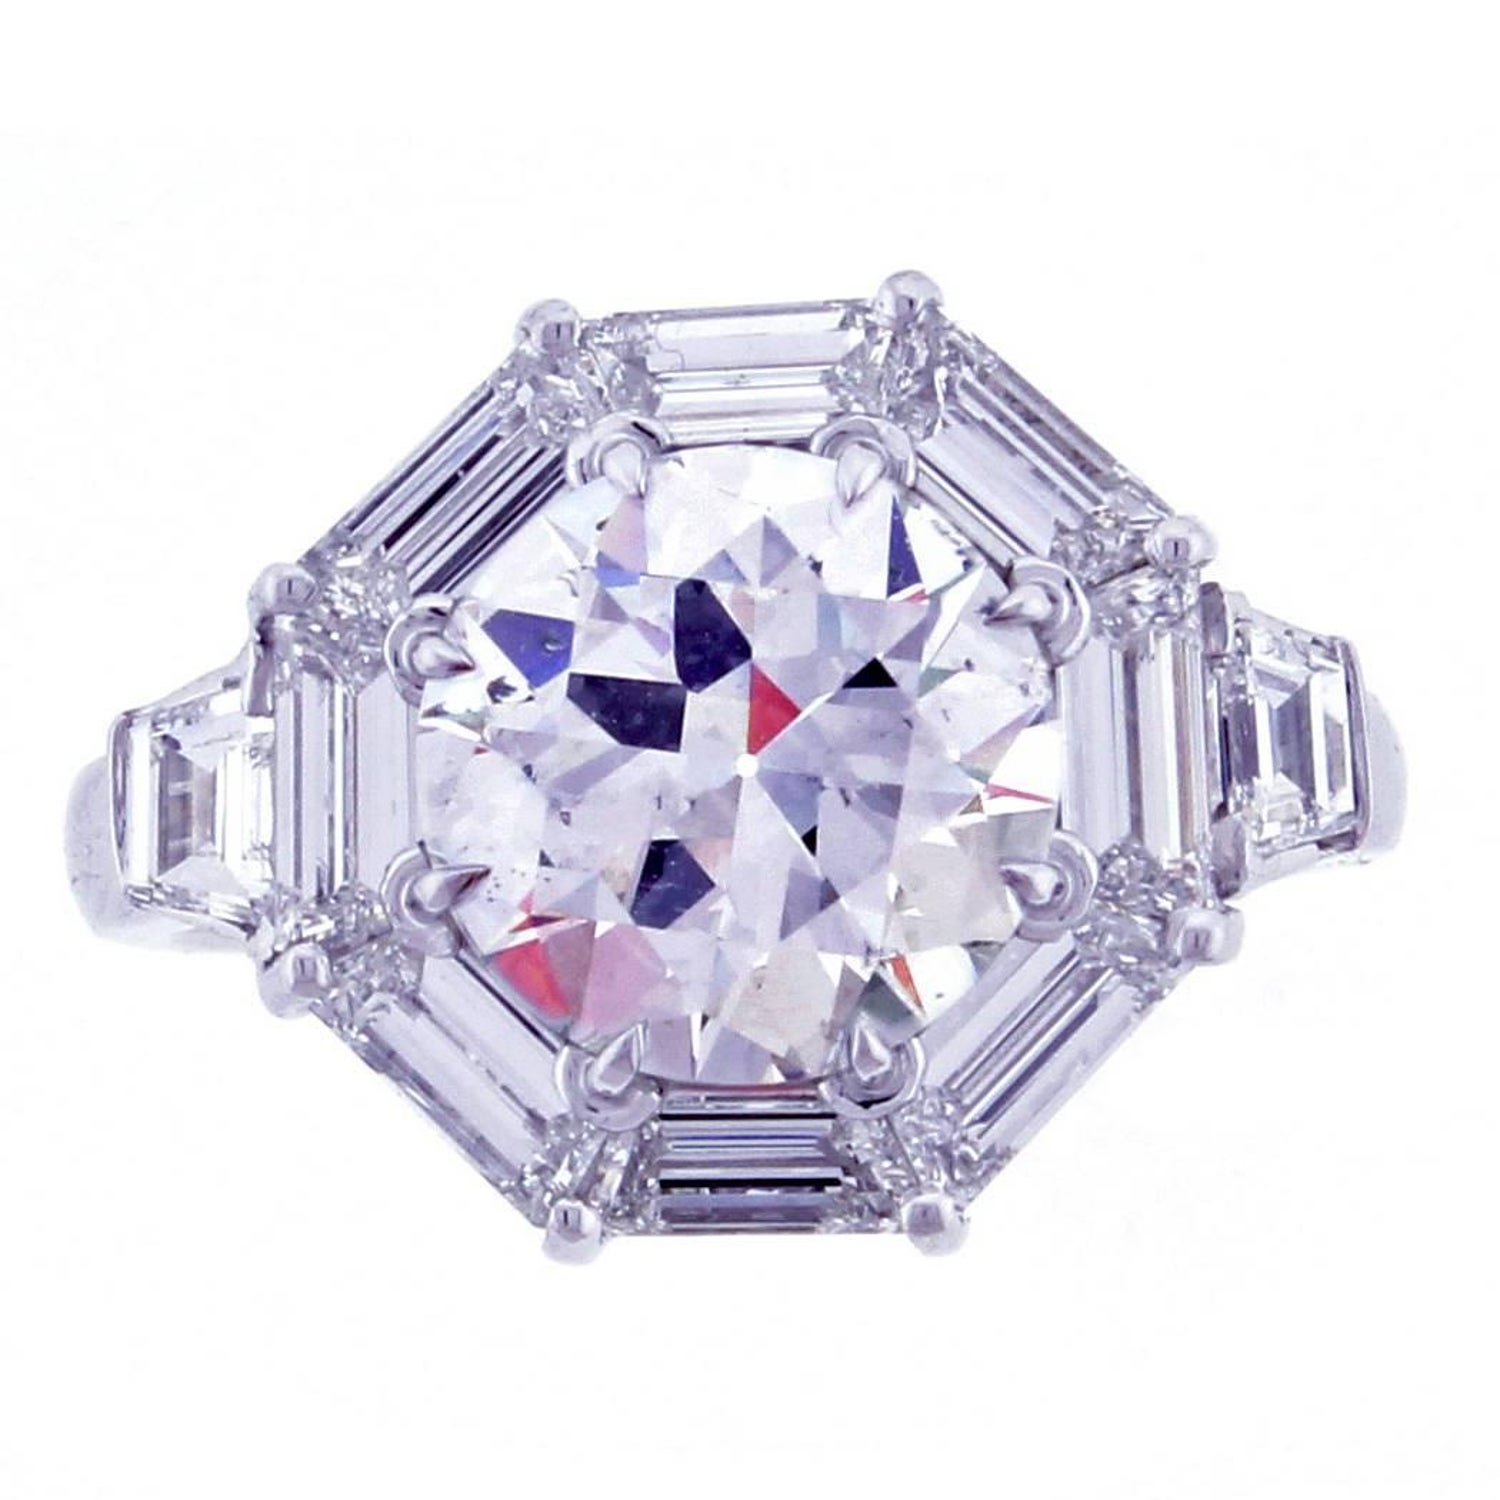 diamond ring madison octagon shaped antique ms cut com junikerjewelry